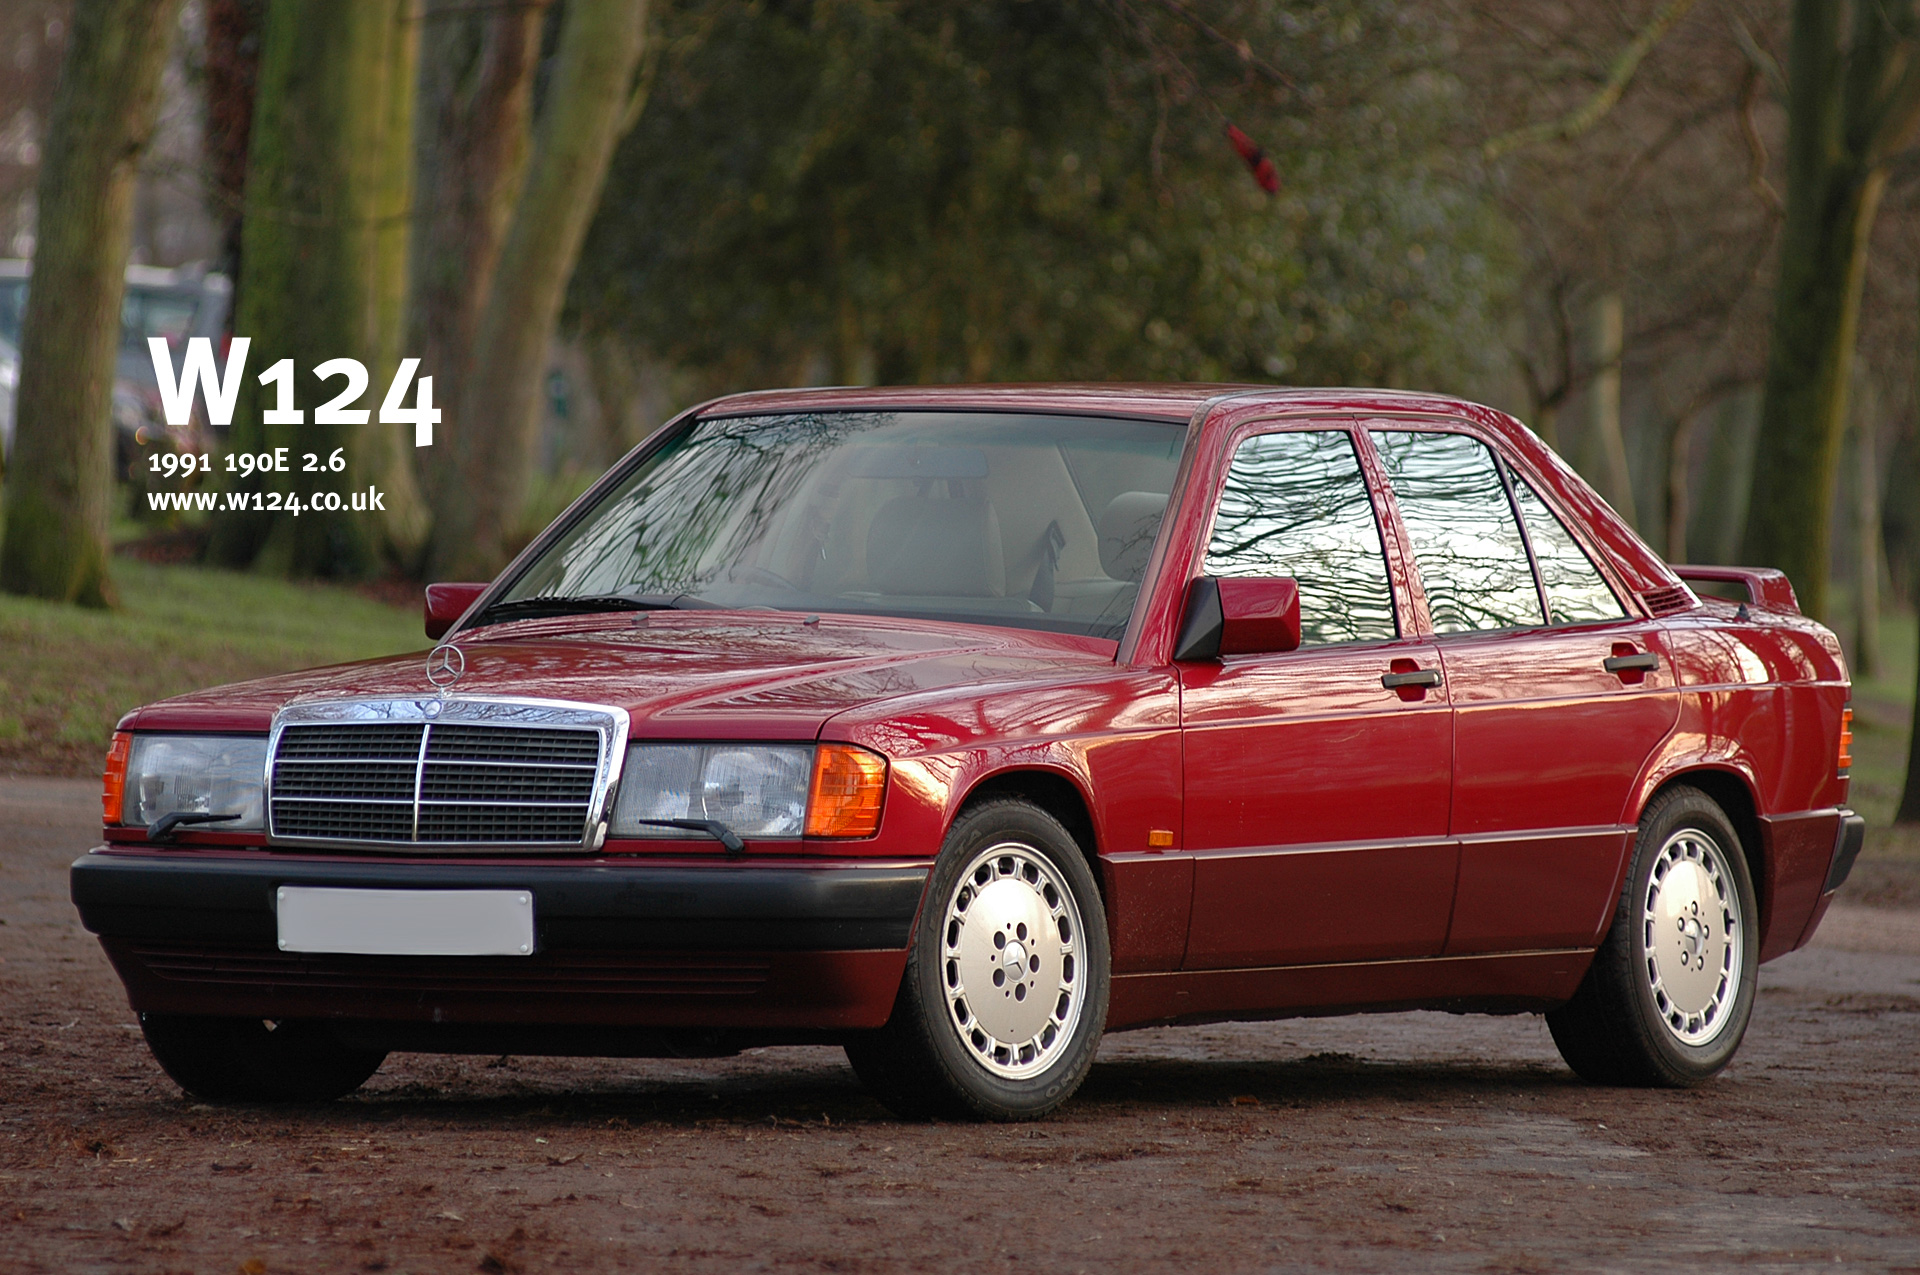 mercedes w201 (190) pictures #1